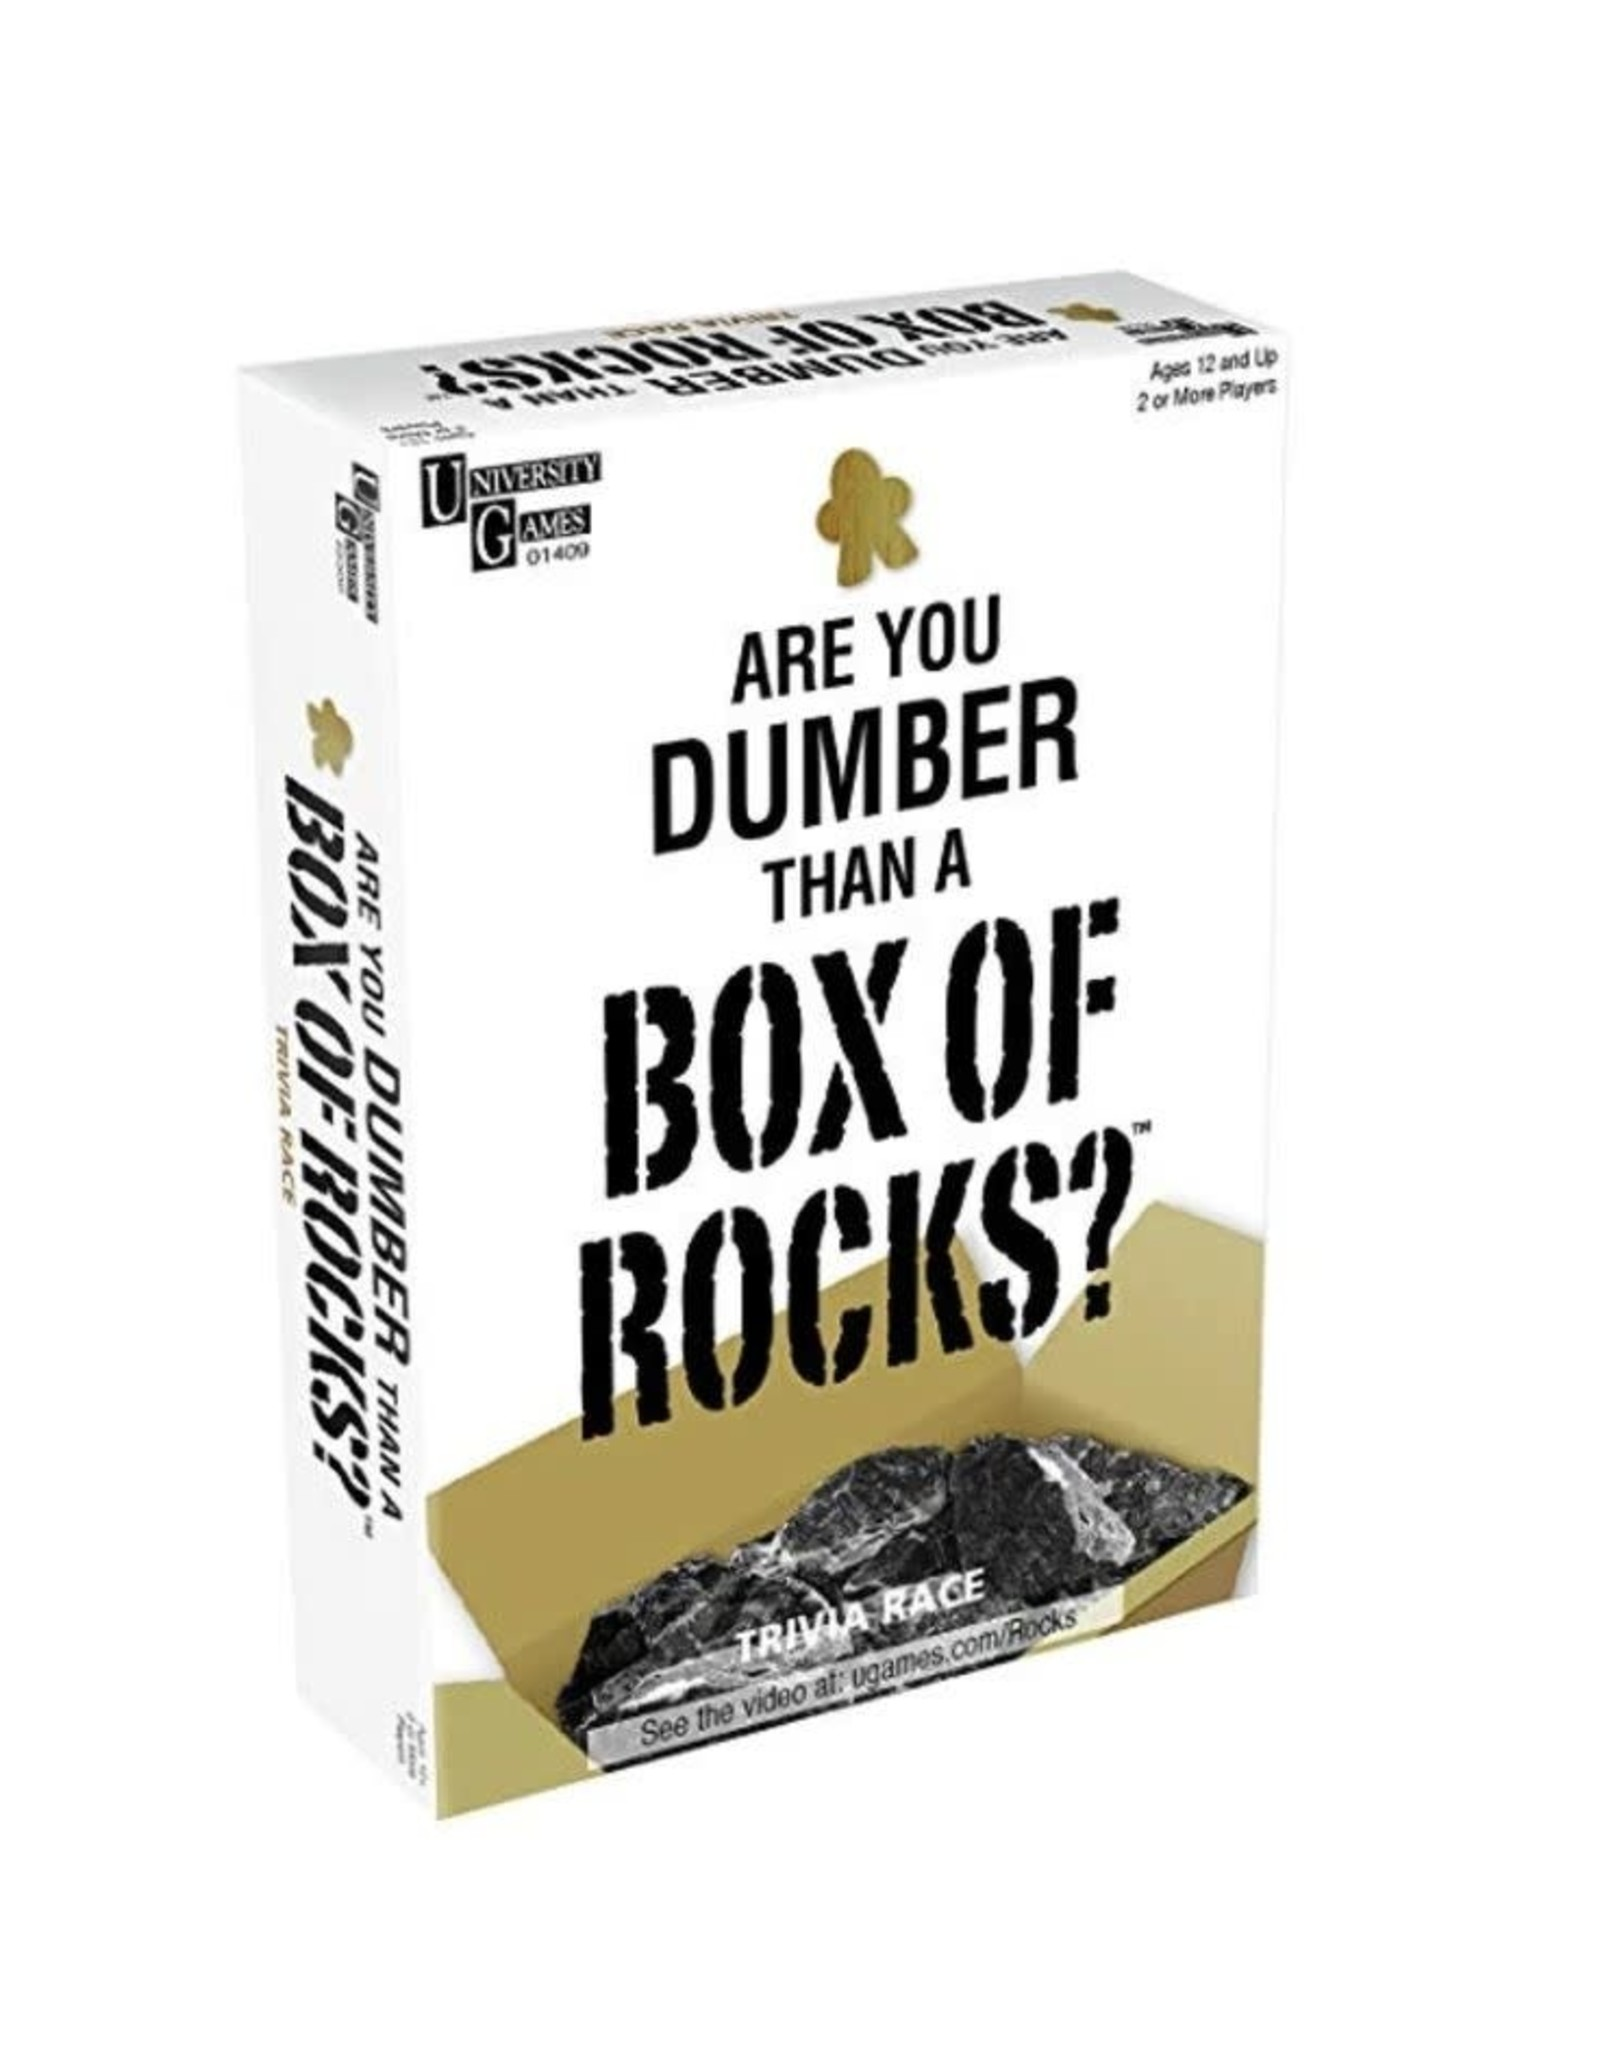 University Games Are You Dumber Than A Box of Rocks